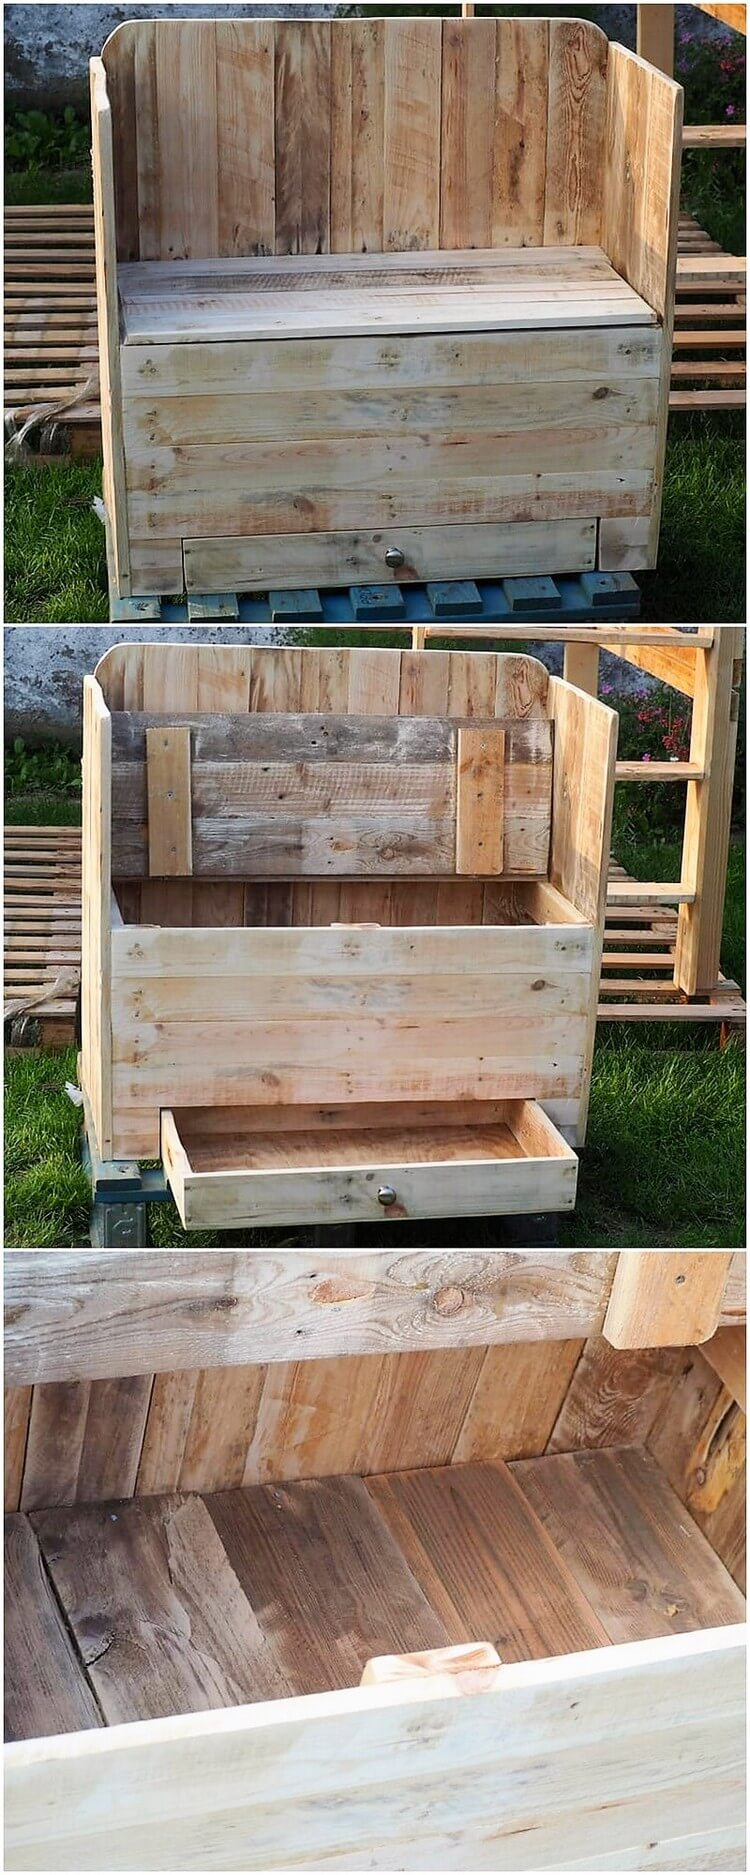 Pallet Seat with Drawers